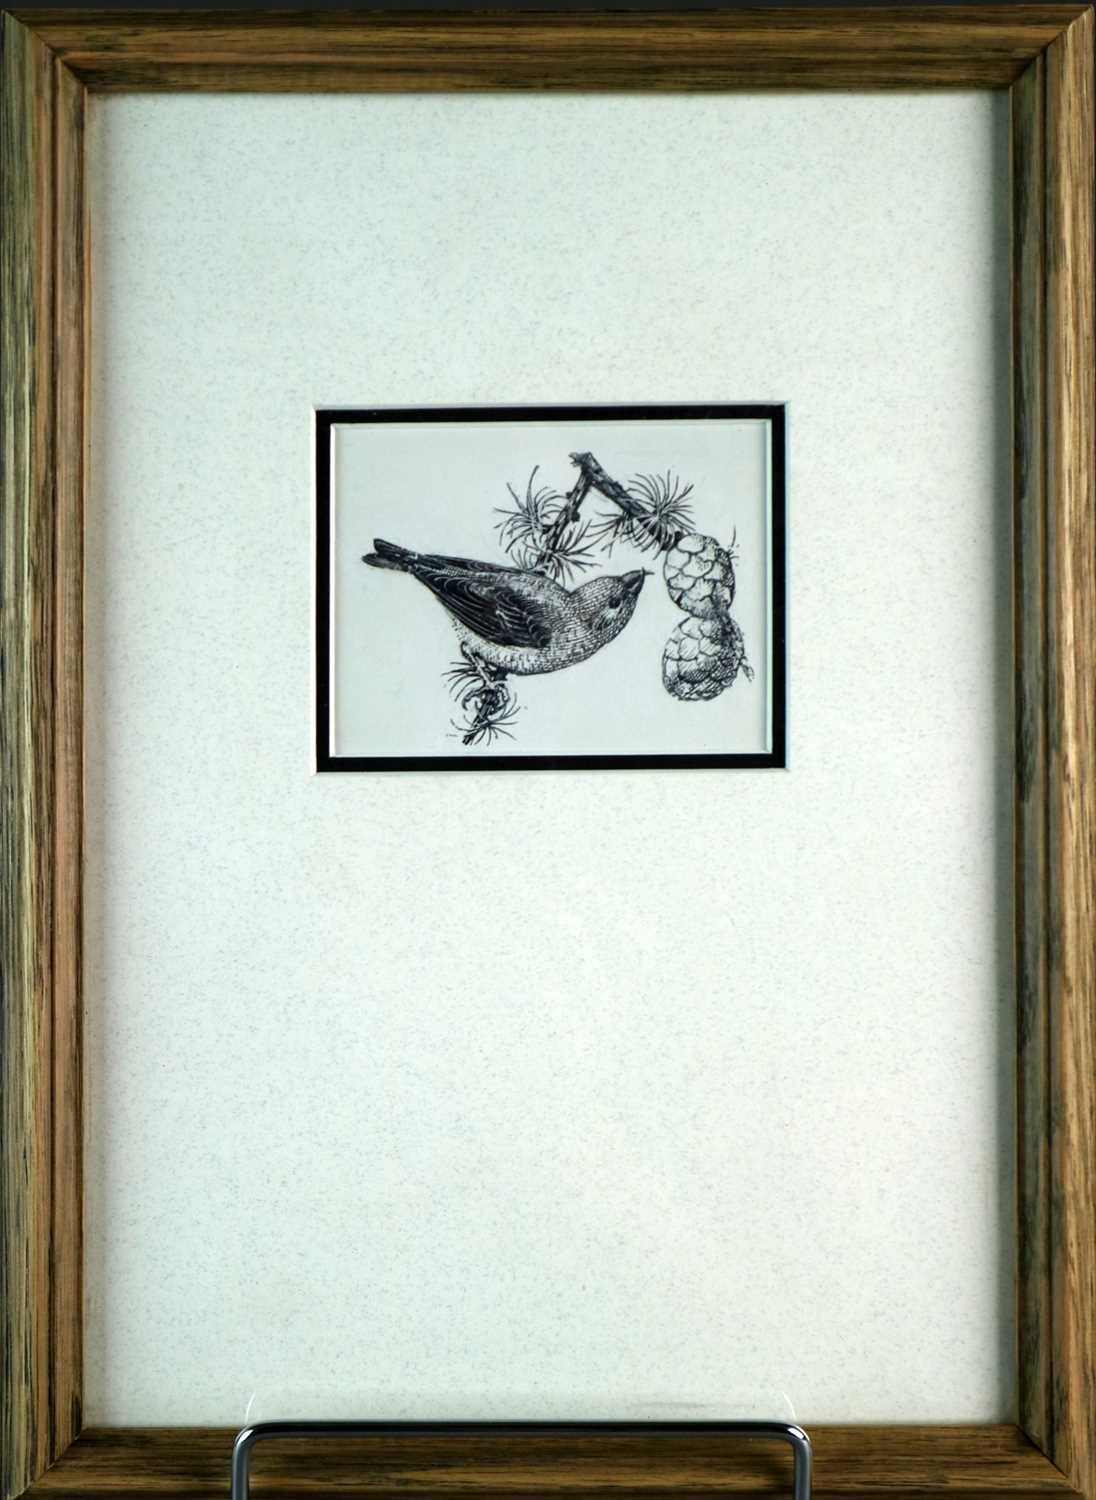 Charles Frederick Tunnicliffe OBE RA(1901-1979) Crossbill - Image 2 of 2